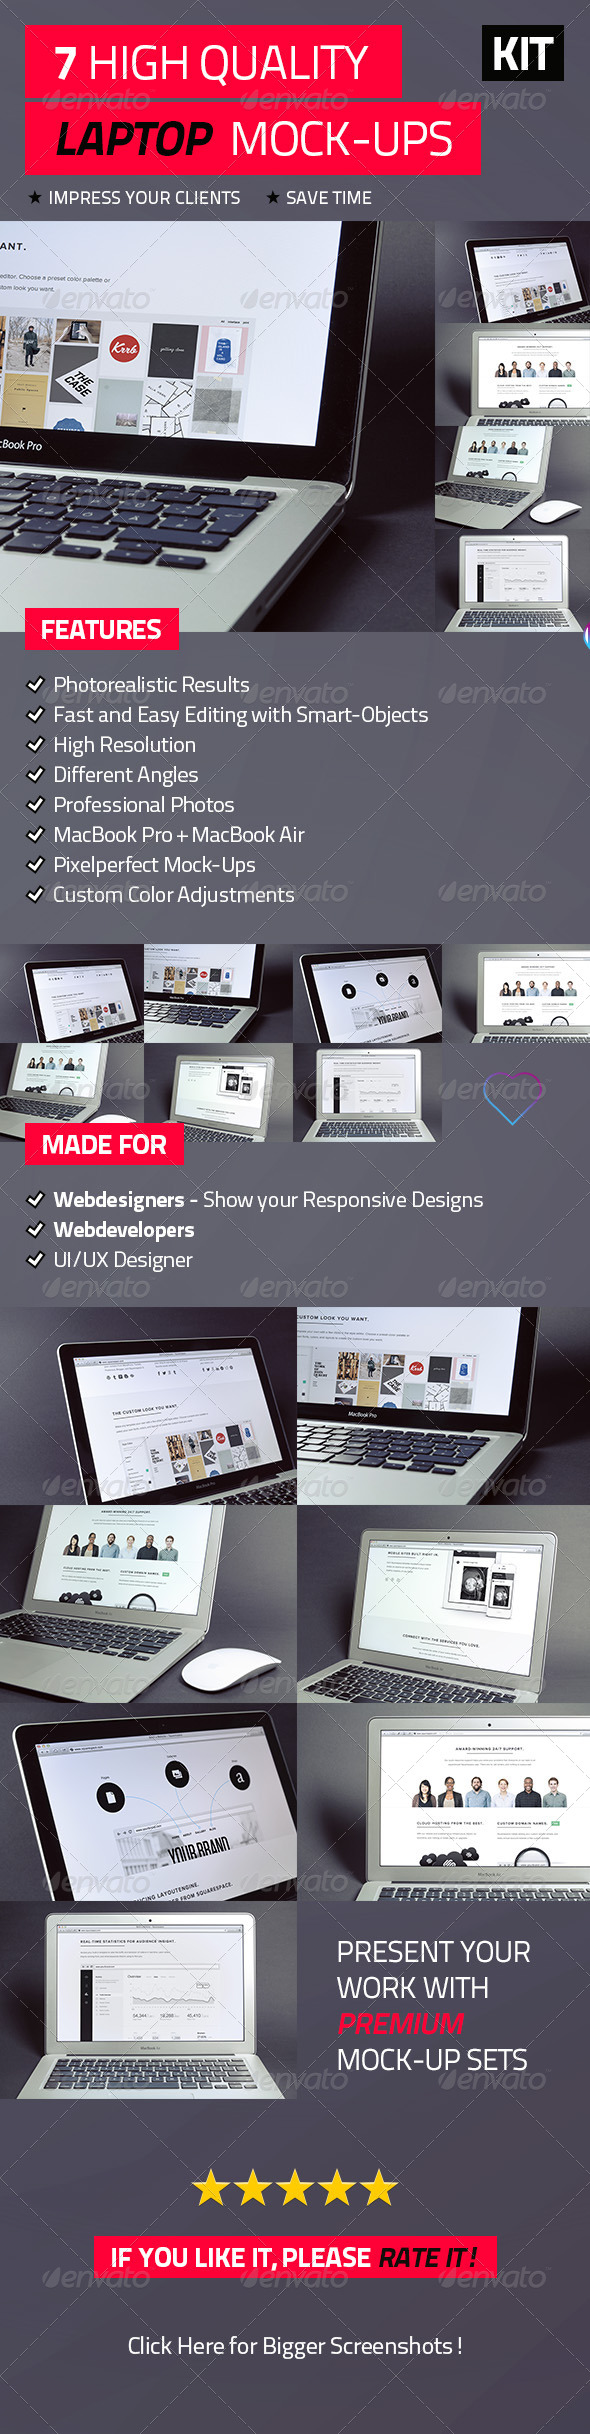 7 High Quality Laptop Mock-Ups - Laptop Displays